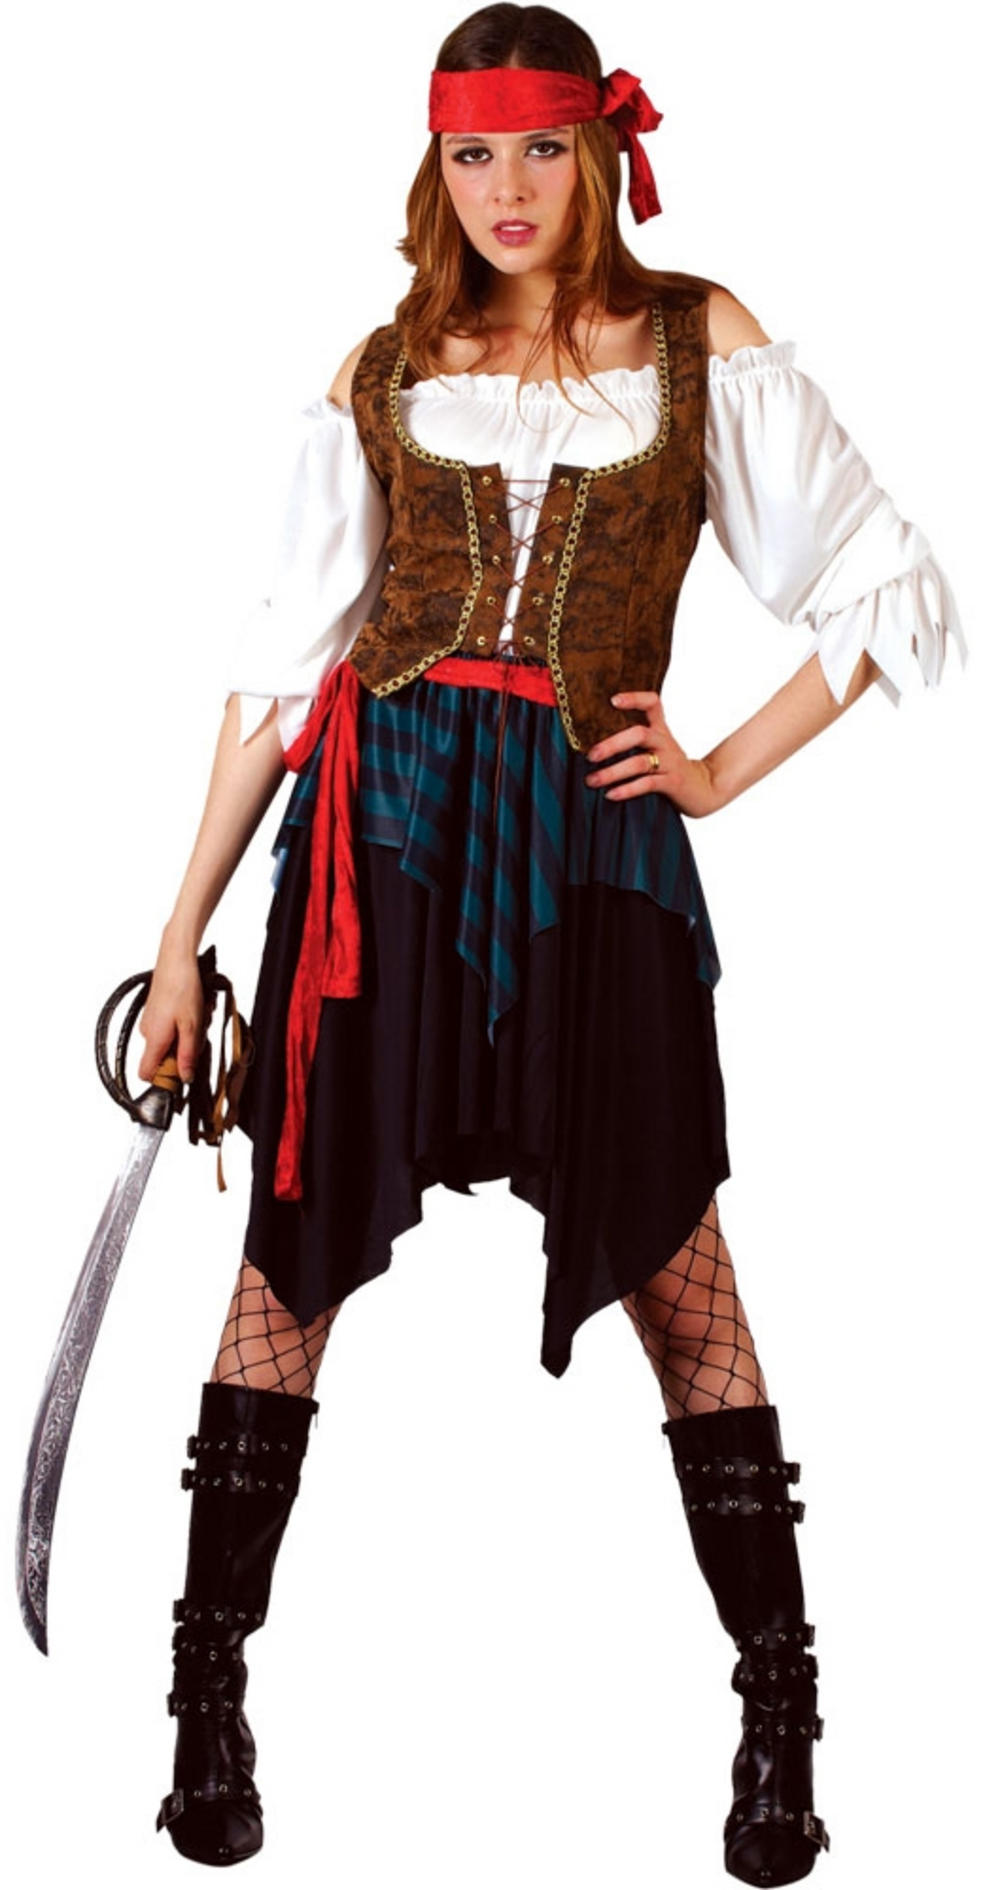 Caribbean Pirate Sea Wench Costume  sc 1 st  Mega Fancy Dress & Caribbean Pirate Sea Wench Costume | All Ladies Costumes | Mega ...